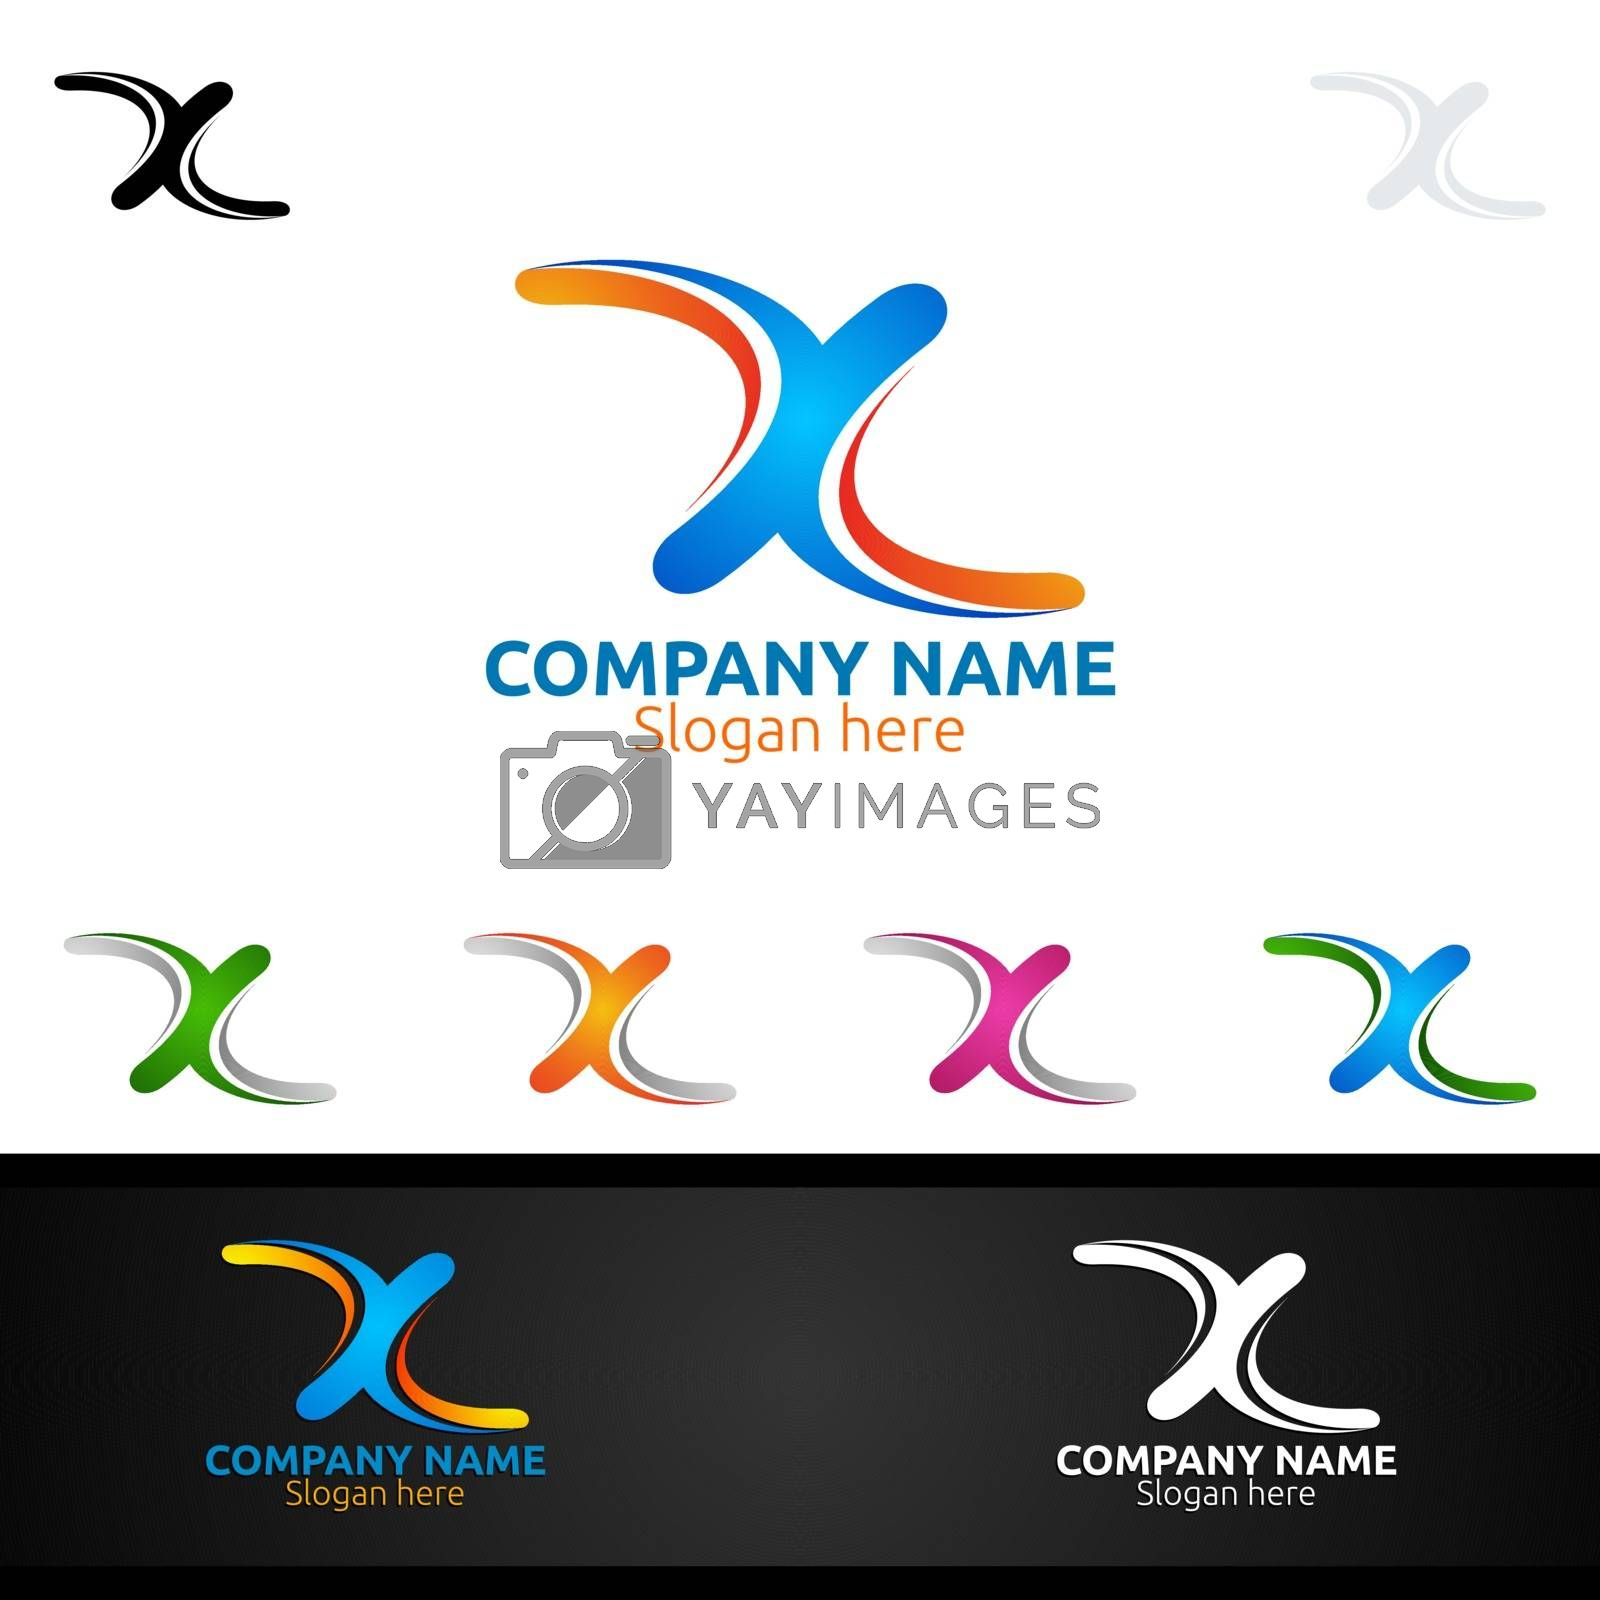 Letter X for Digital Vector Logo, Marketing, Financial, Advisor or Invest Design Icon